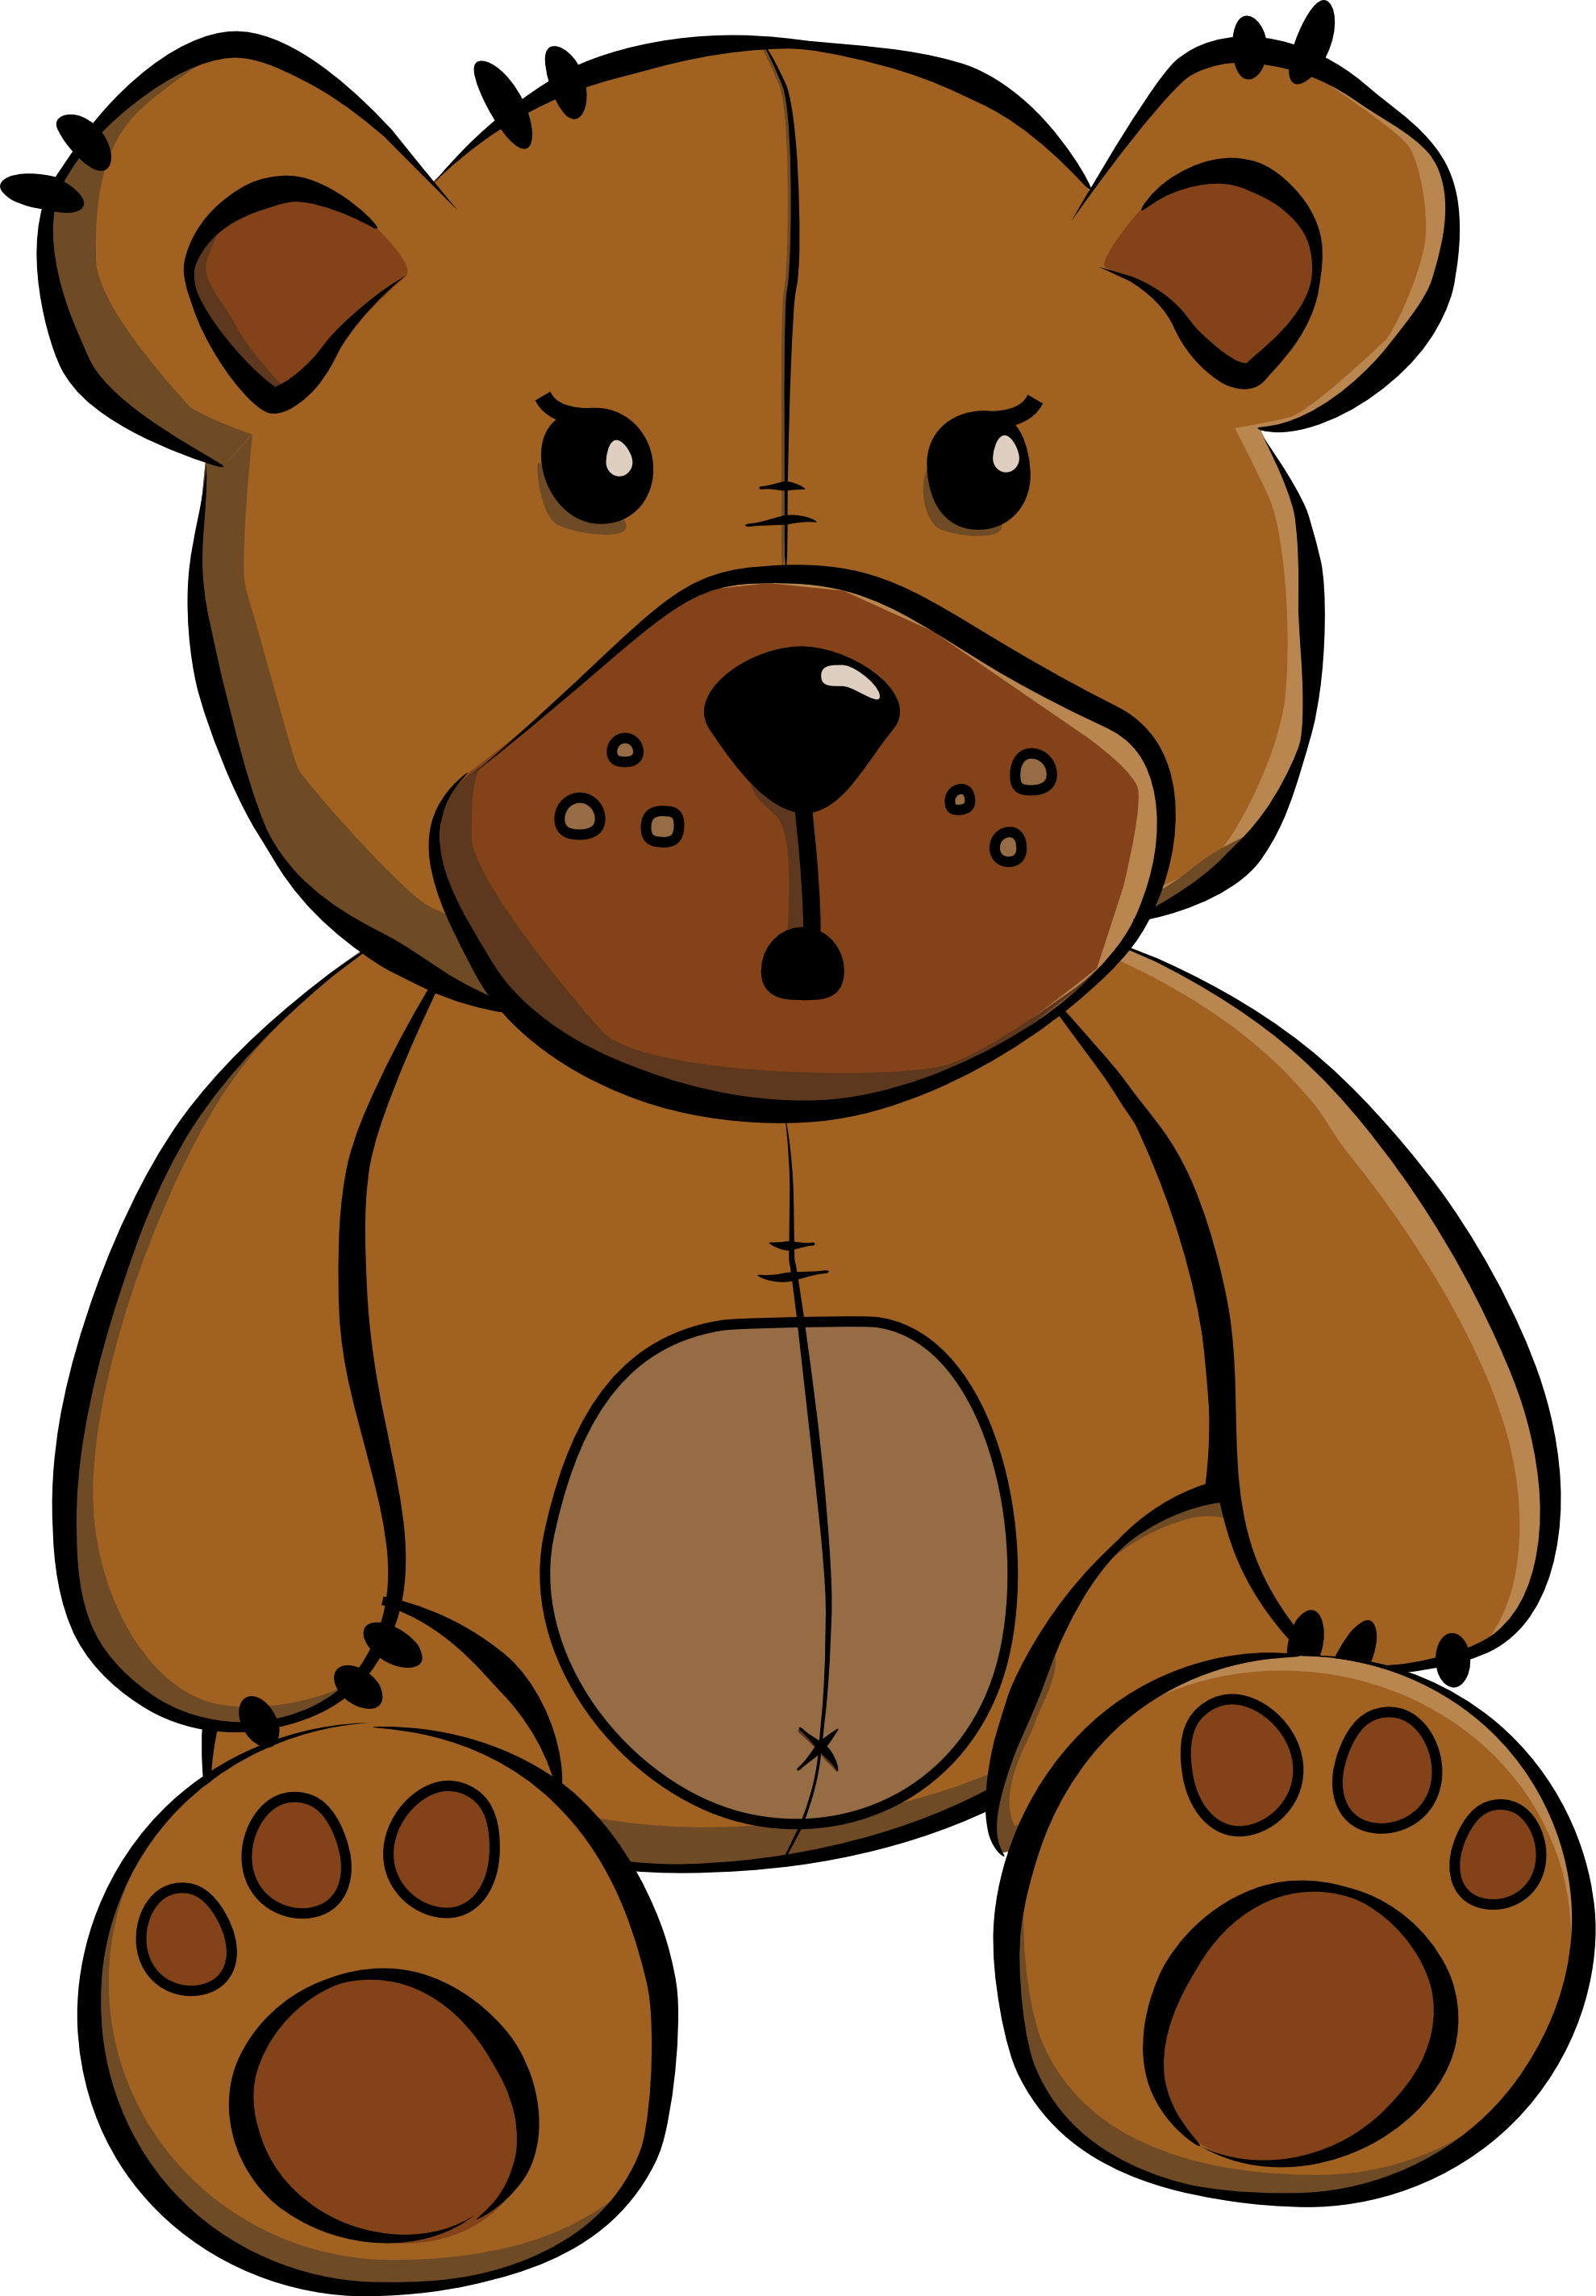 transparent download Bear cubs clipart. Toy png image